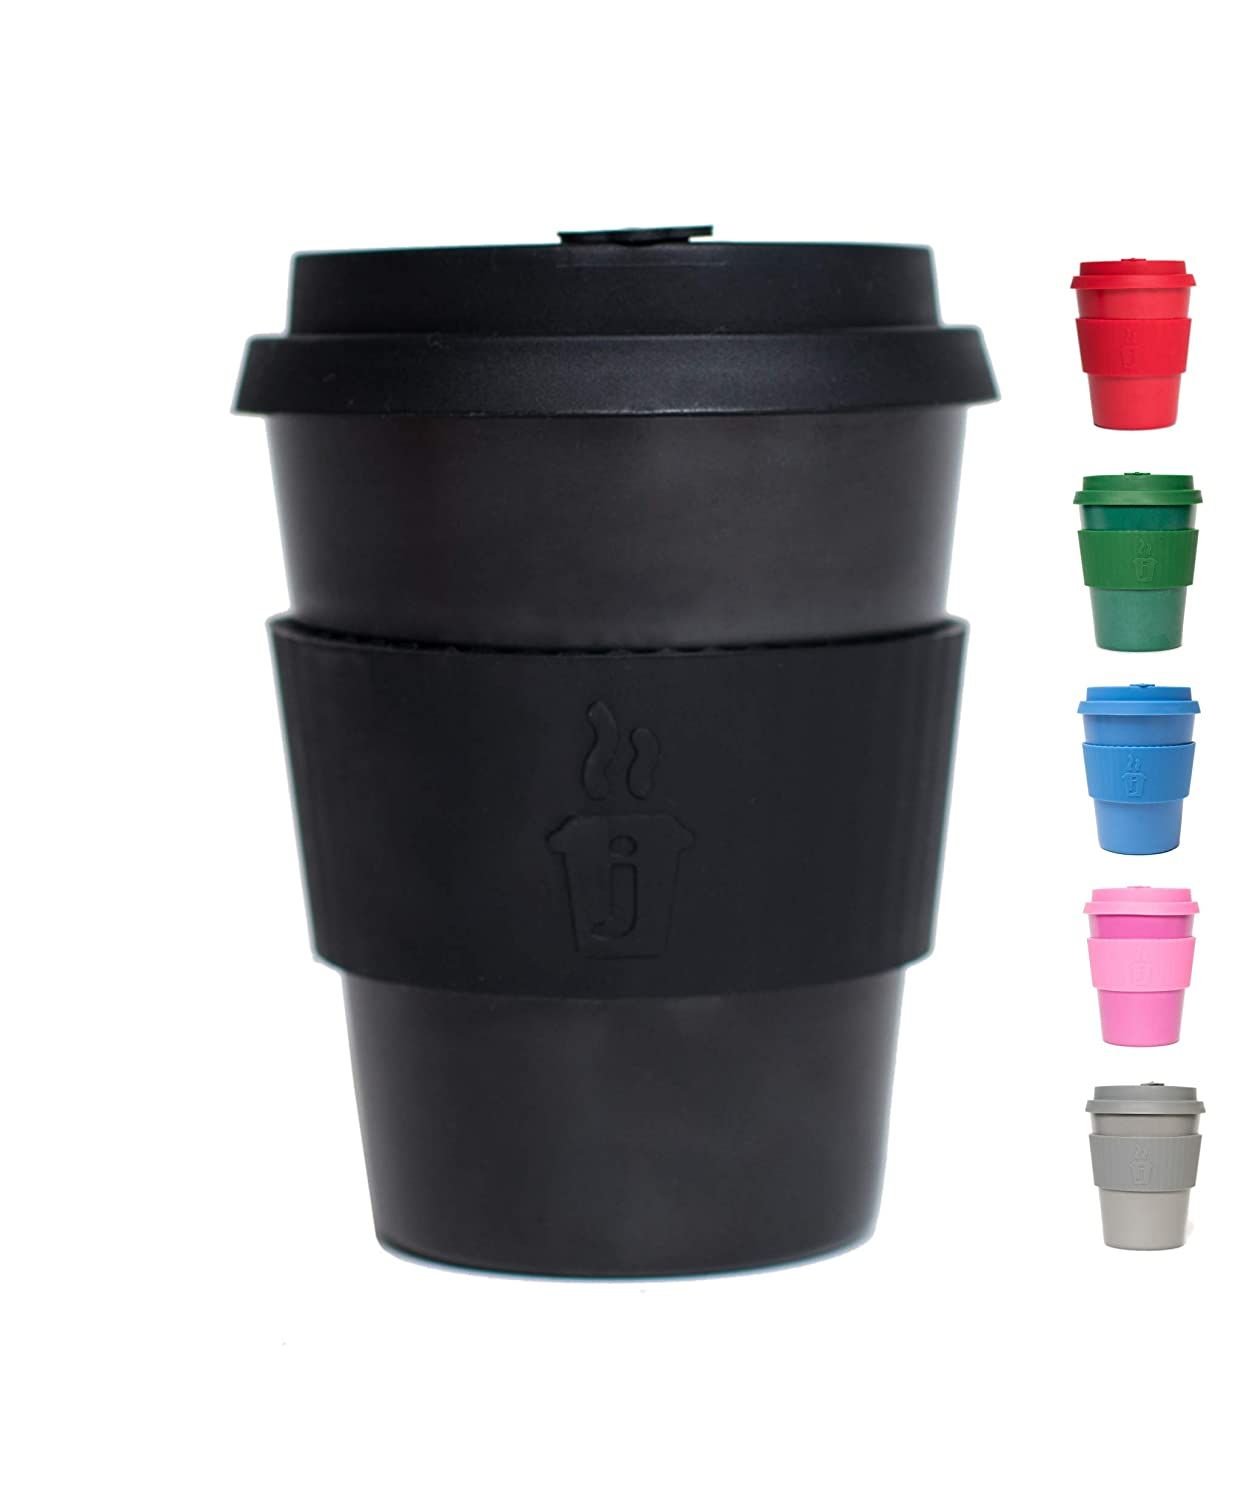 Premium Reusable Coffee Cup for Travel To Go 12oz | Takeaway Bamboo Mug with Lid & Spill Stopper | Plastic & BPA Free | Dishwasher Safe Portable Eco Cup | Organic Bamboo Fiber | Black